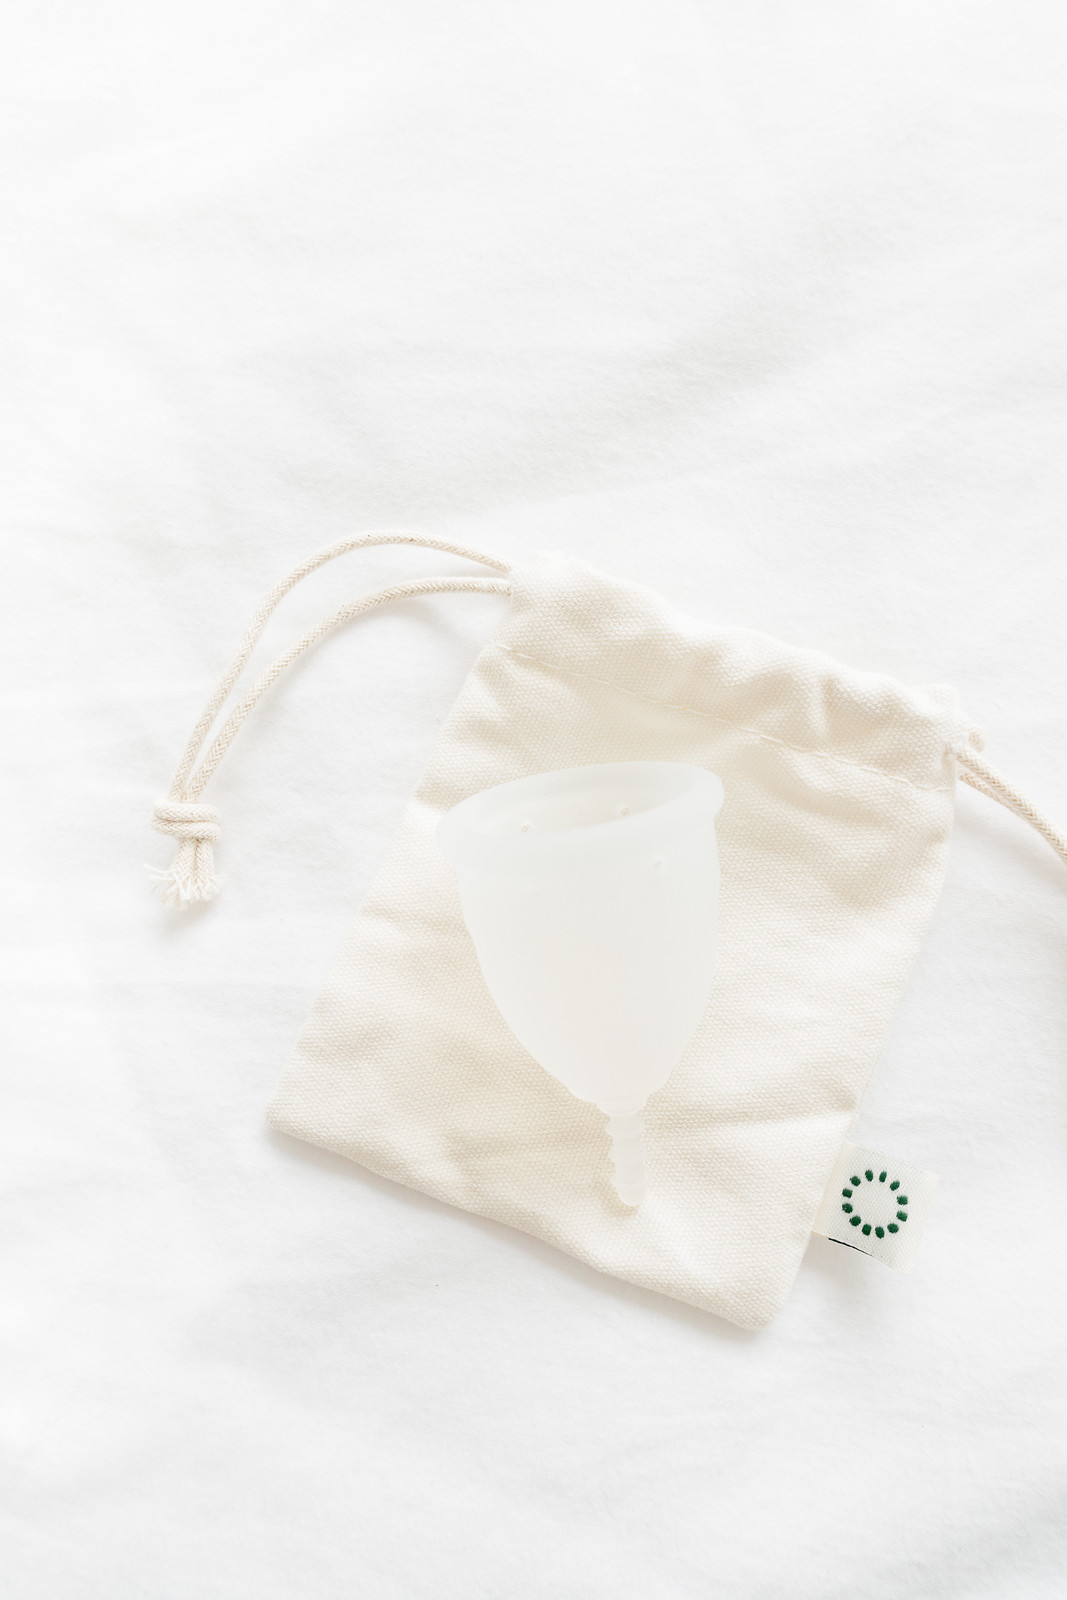 Using A Menstrual Cup with Organicup [AD]